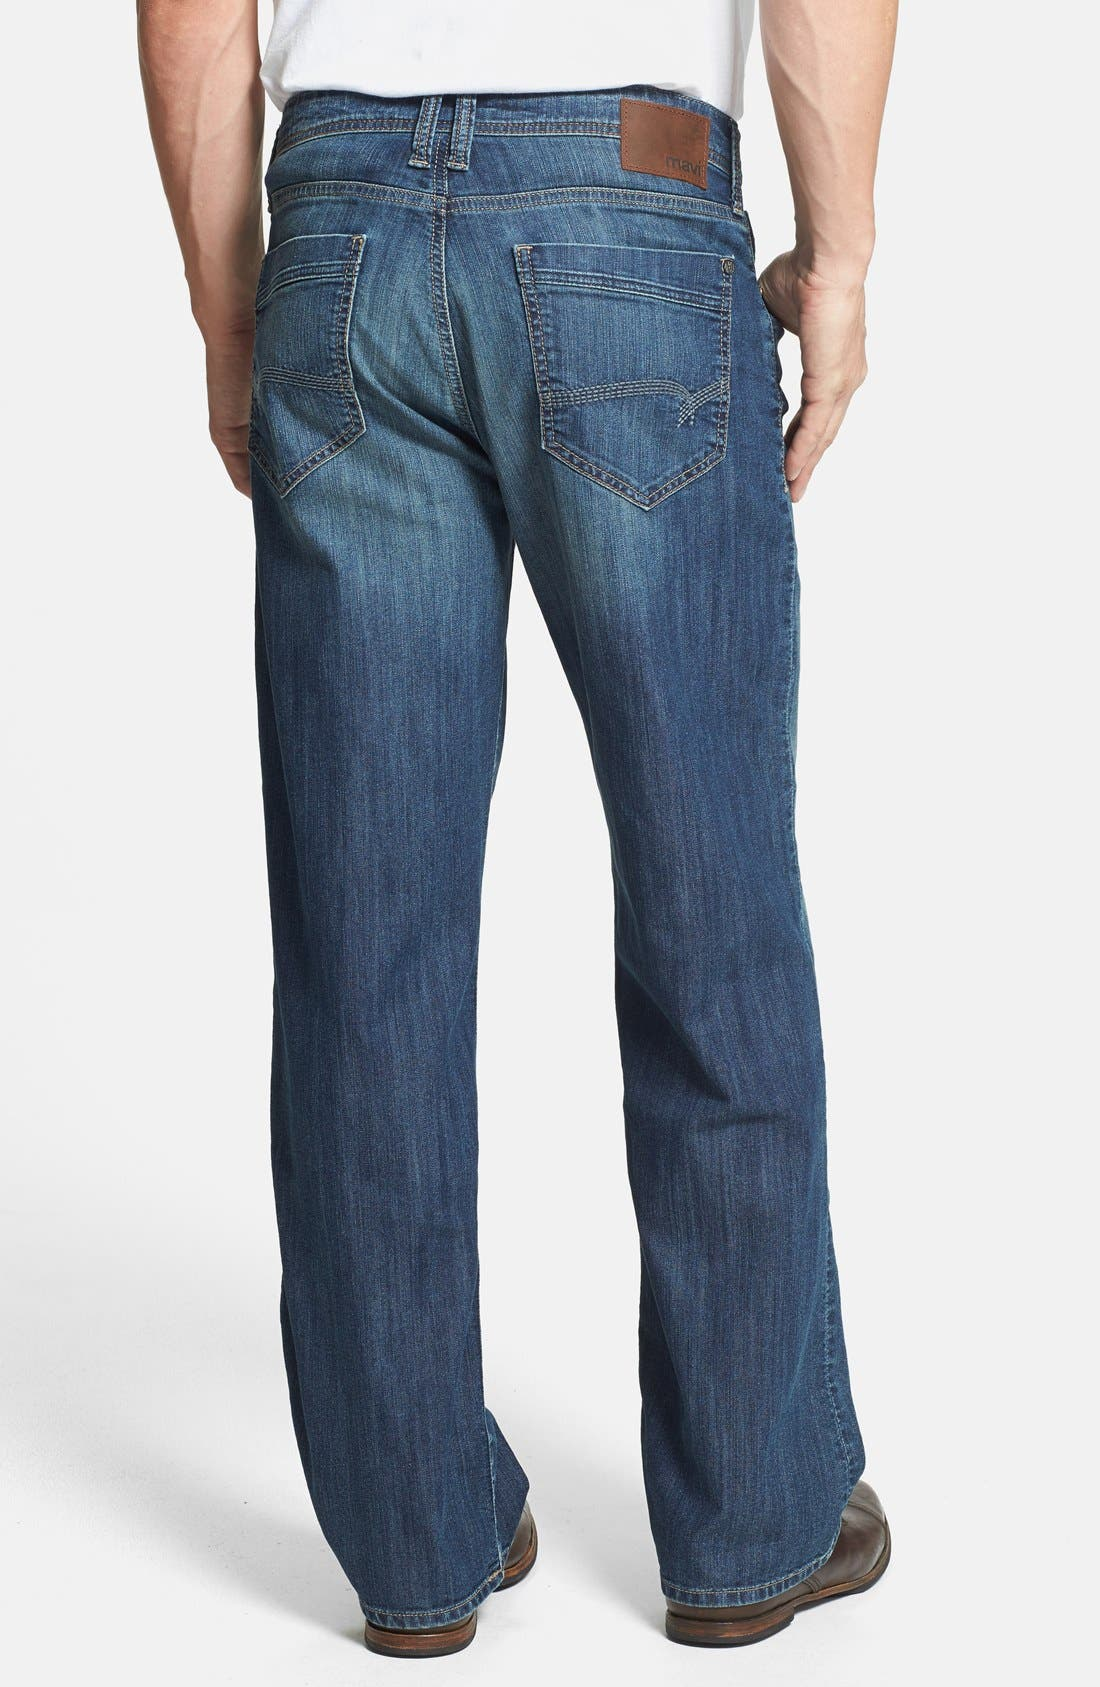 Alternate Image 2  - Mavi Jeans 'Max' Relaxed Fit Jeans (Mid Railtown) (Online Only)